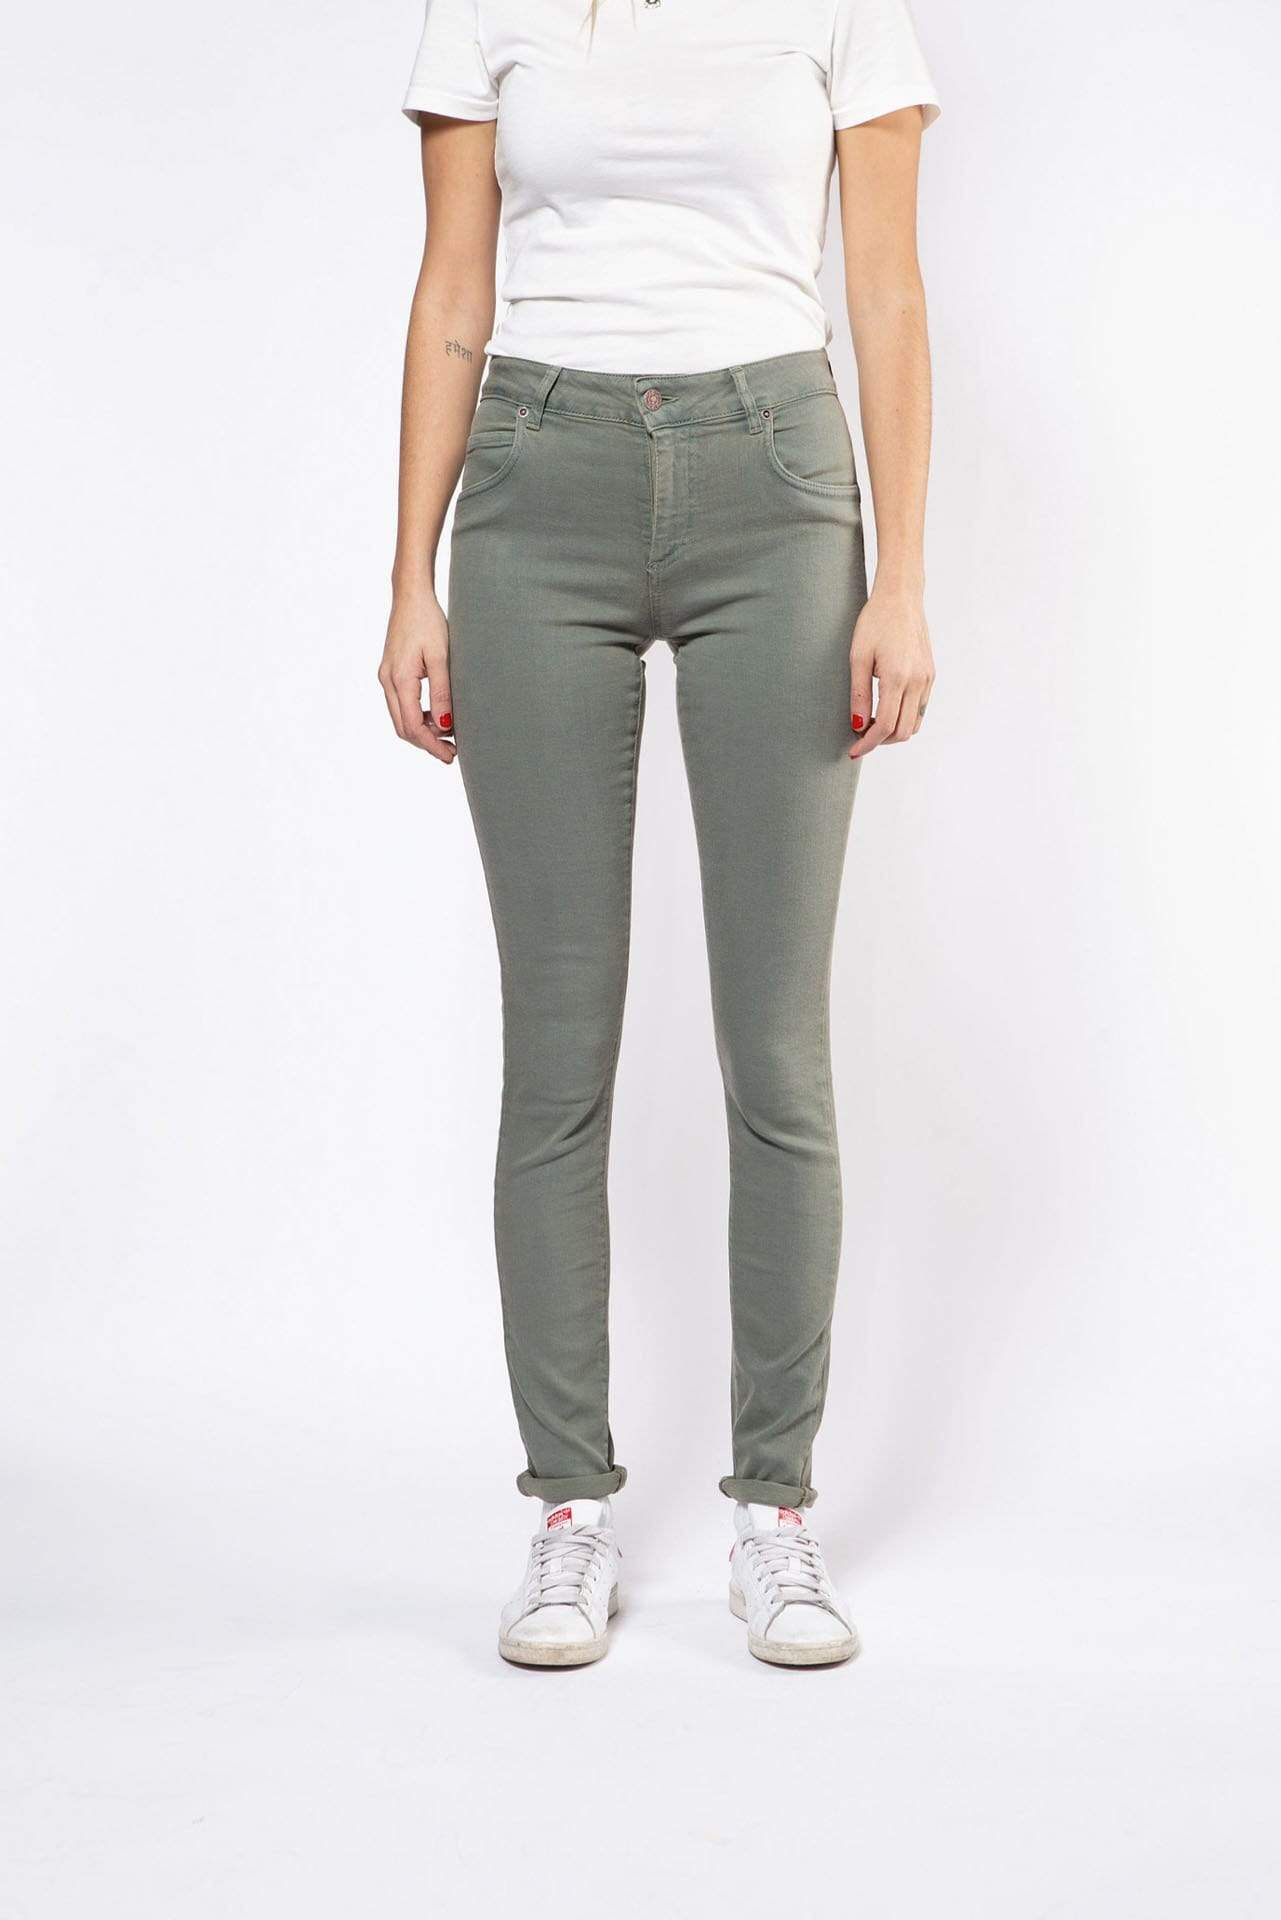 Par.co Fashion SRL pants Fresia Skinny Jeans in Organic Cotton. sustainable fashion ethical fashion